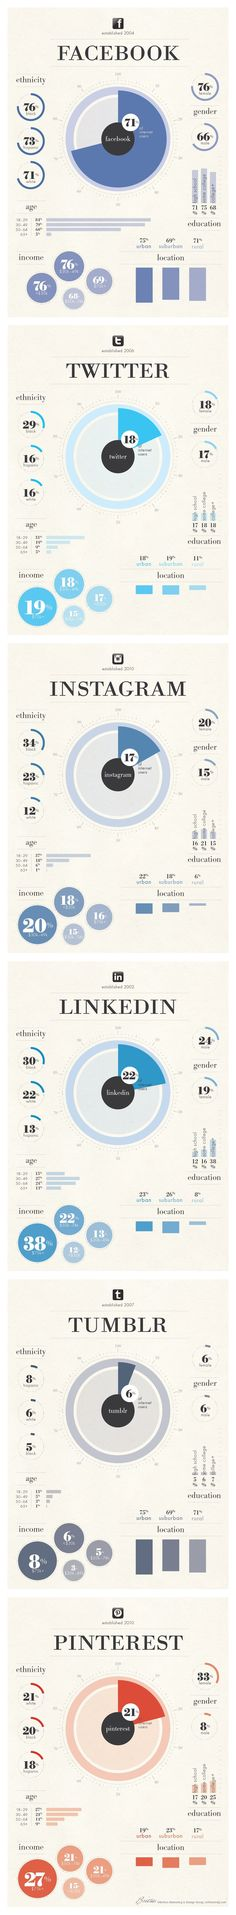 #SocialMedia 2014: User Demographics For #Facebook #Twitter #Instagram #LinkedIn #Tumblr and #Pinterest - #infographic